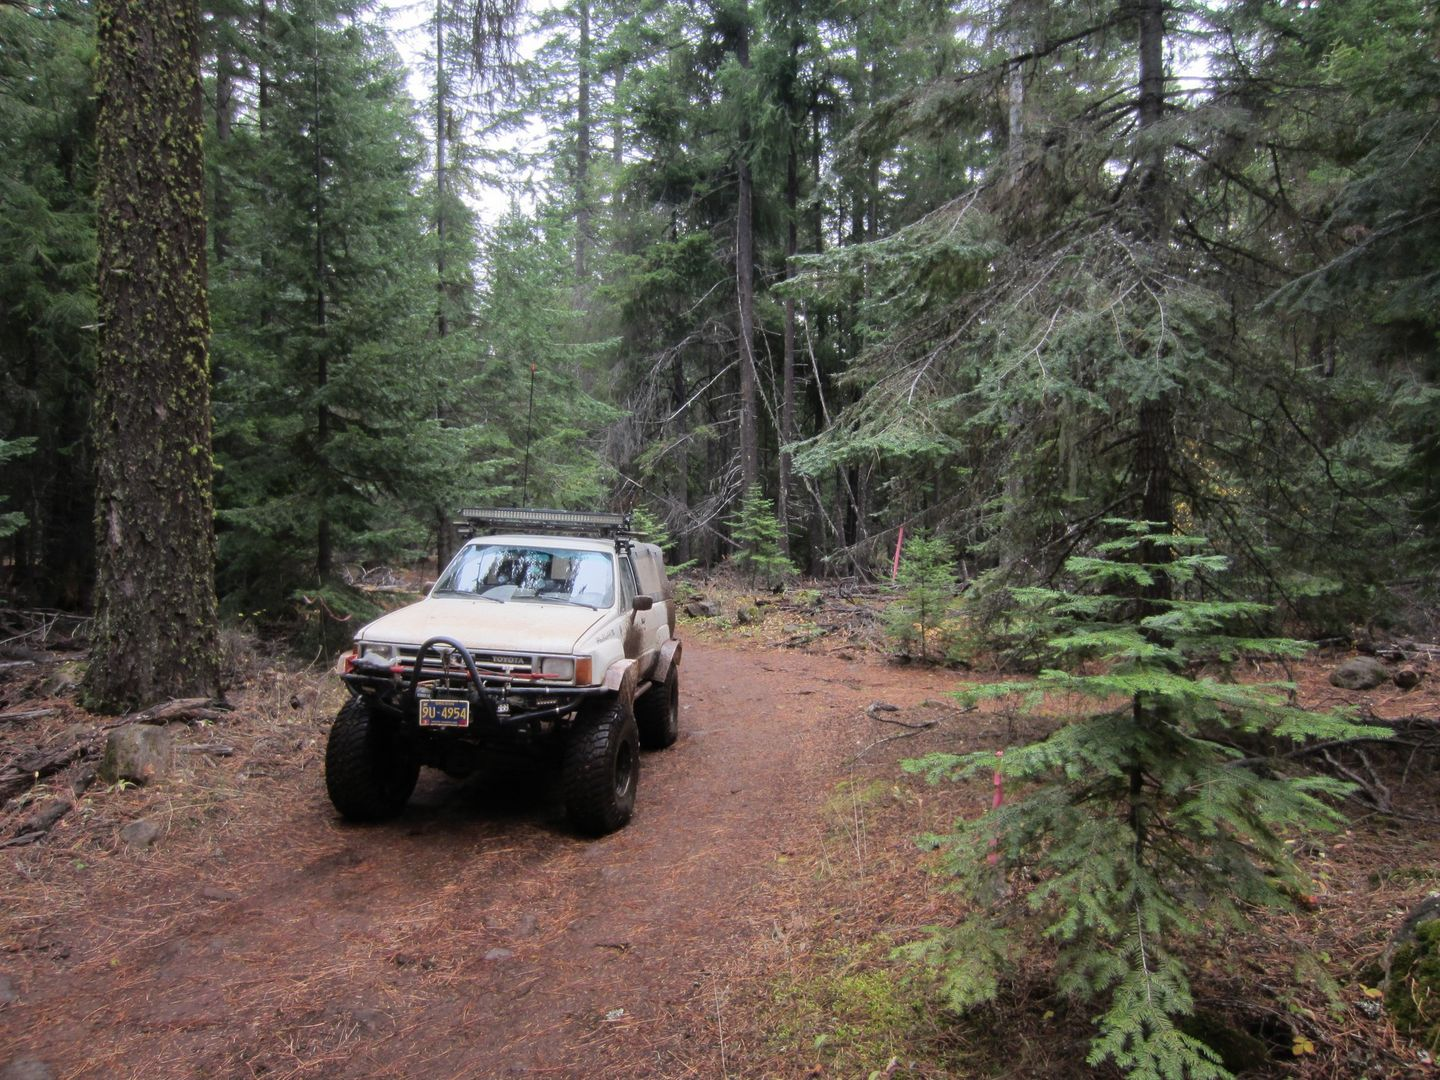 Barlow Trail - Waypoint 8: Go Right - Trail to Left goes to Campsites